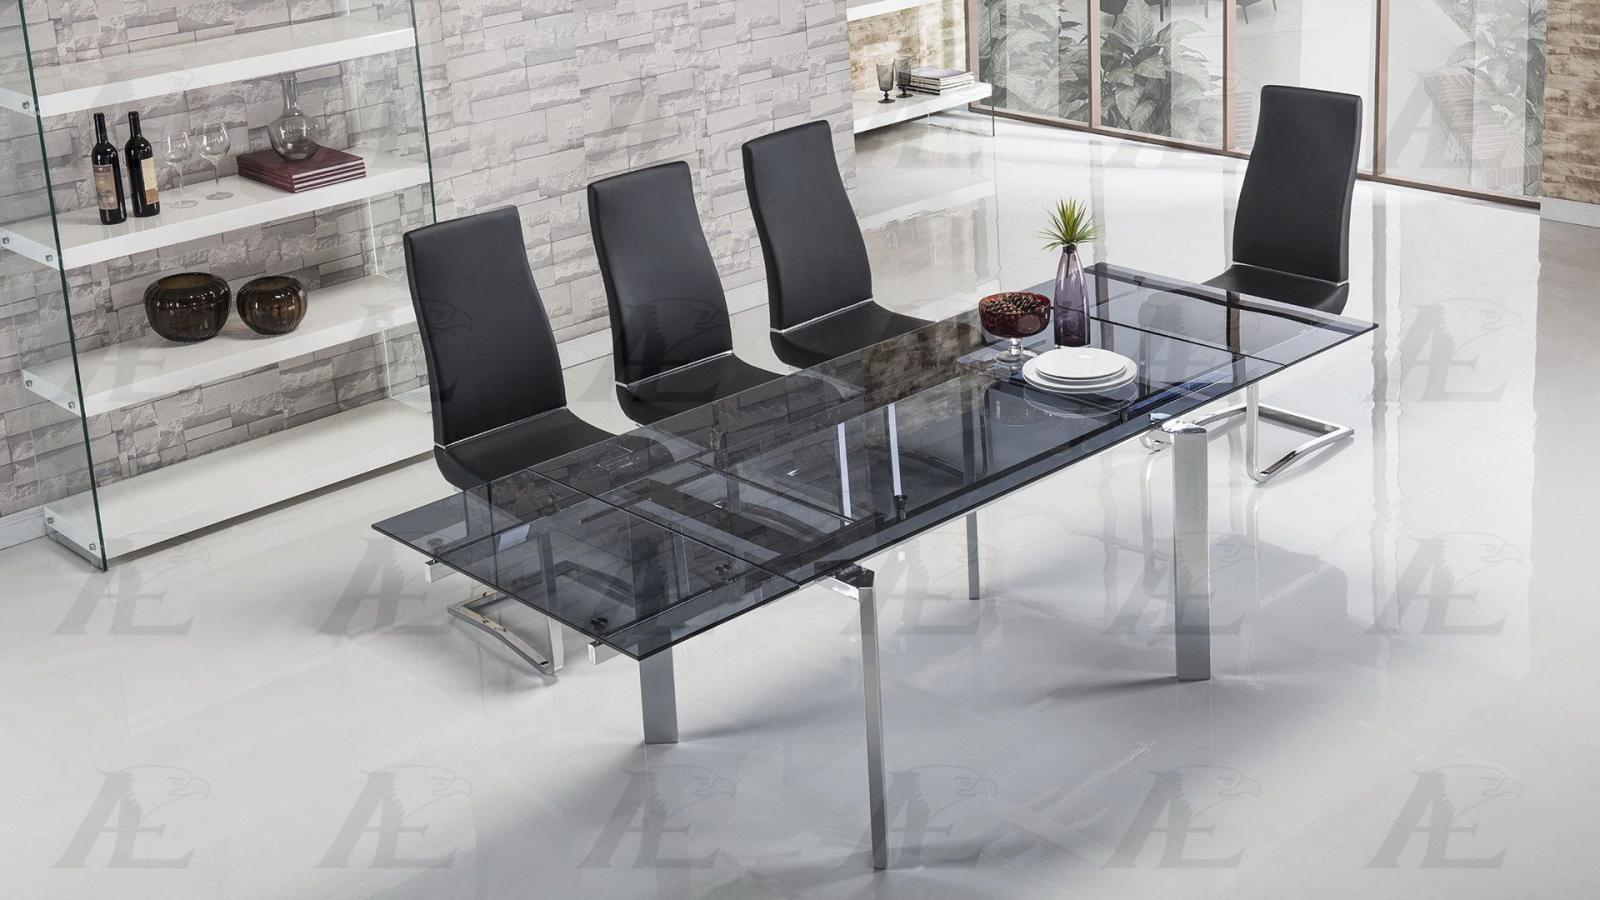 American Eagle Tl 1134s Bl Smoked Gl Top Extendable Dining Table Chrome Legs